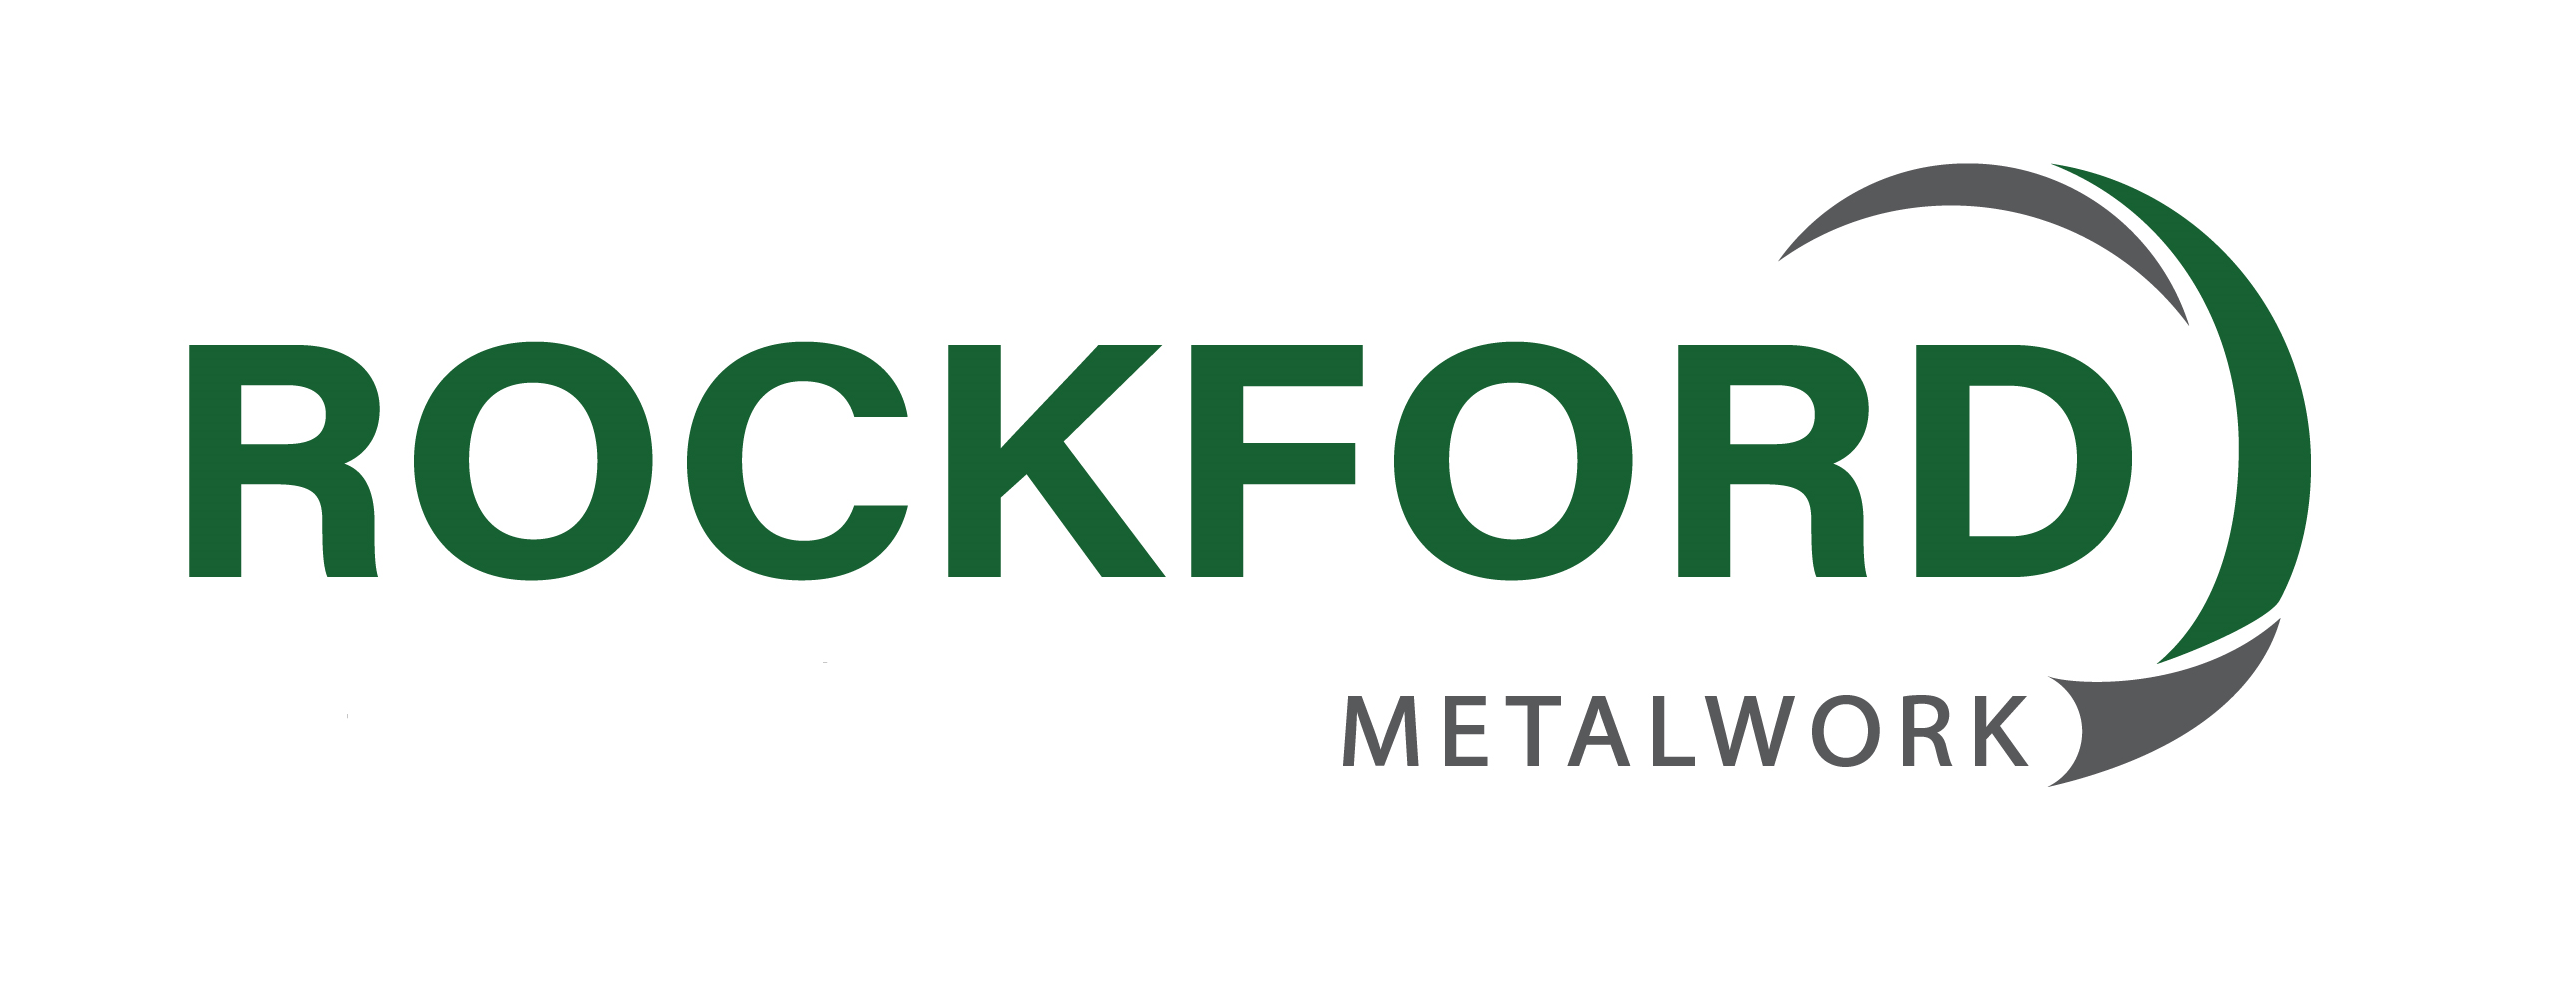 Rockford Metalwork